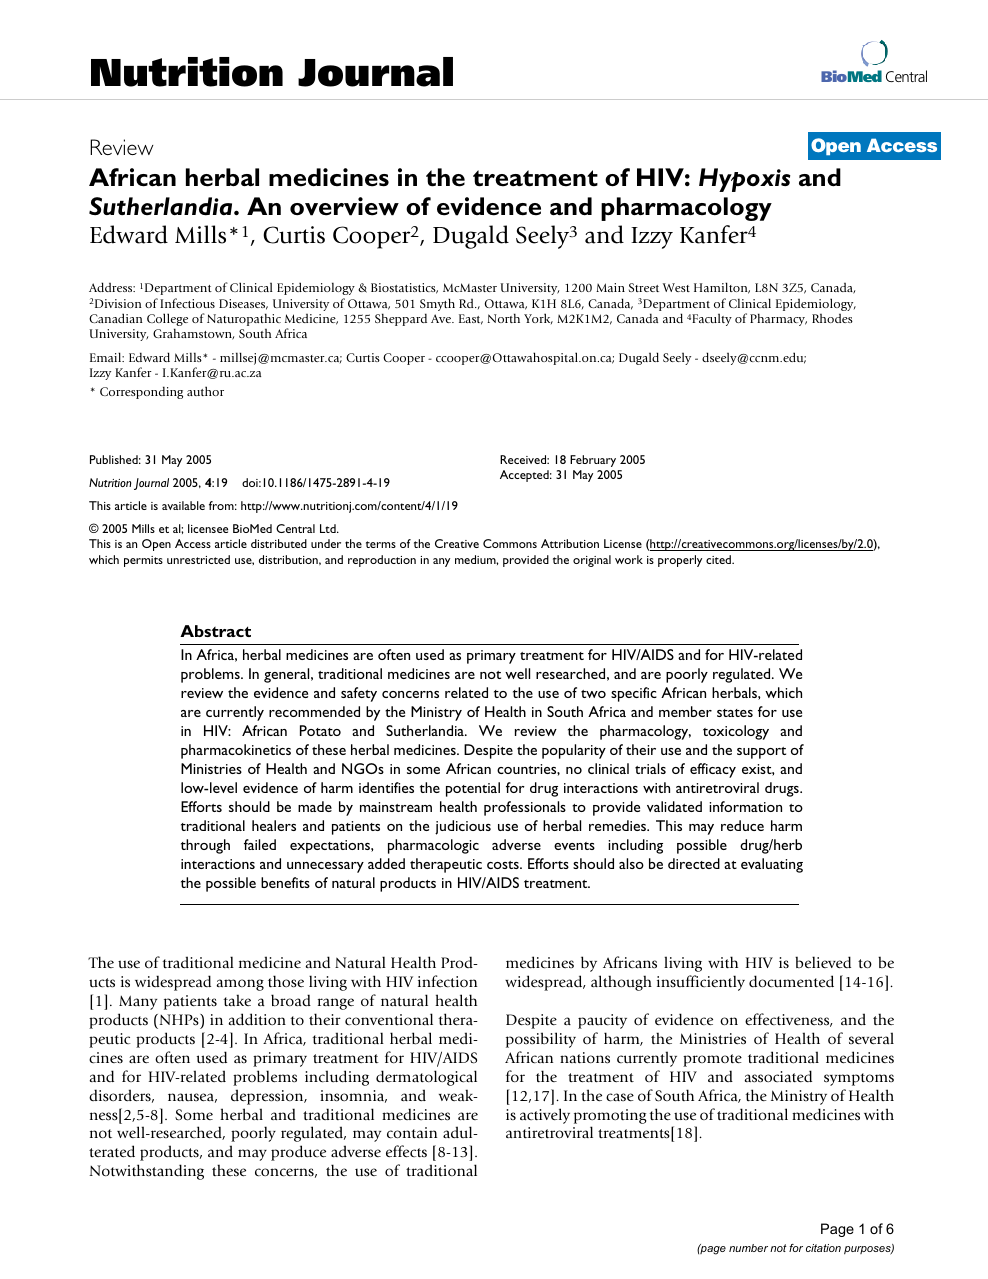 African herbal medicines in the treatment of HIV: Hypoxis